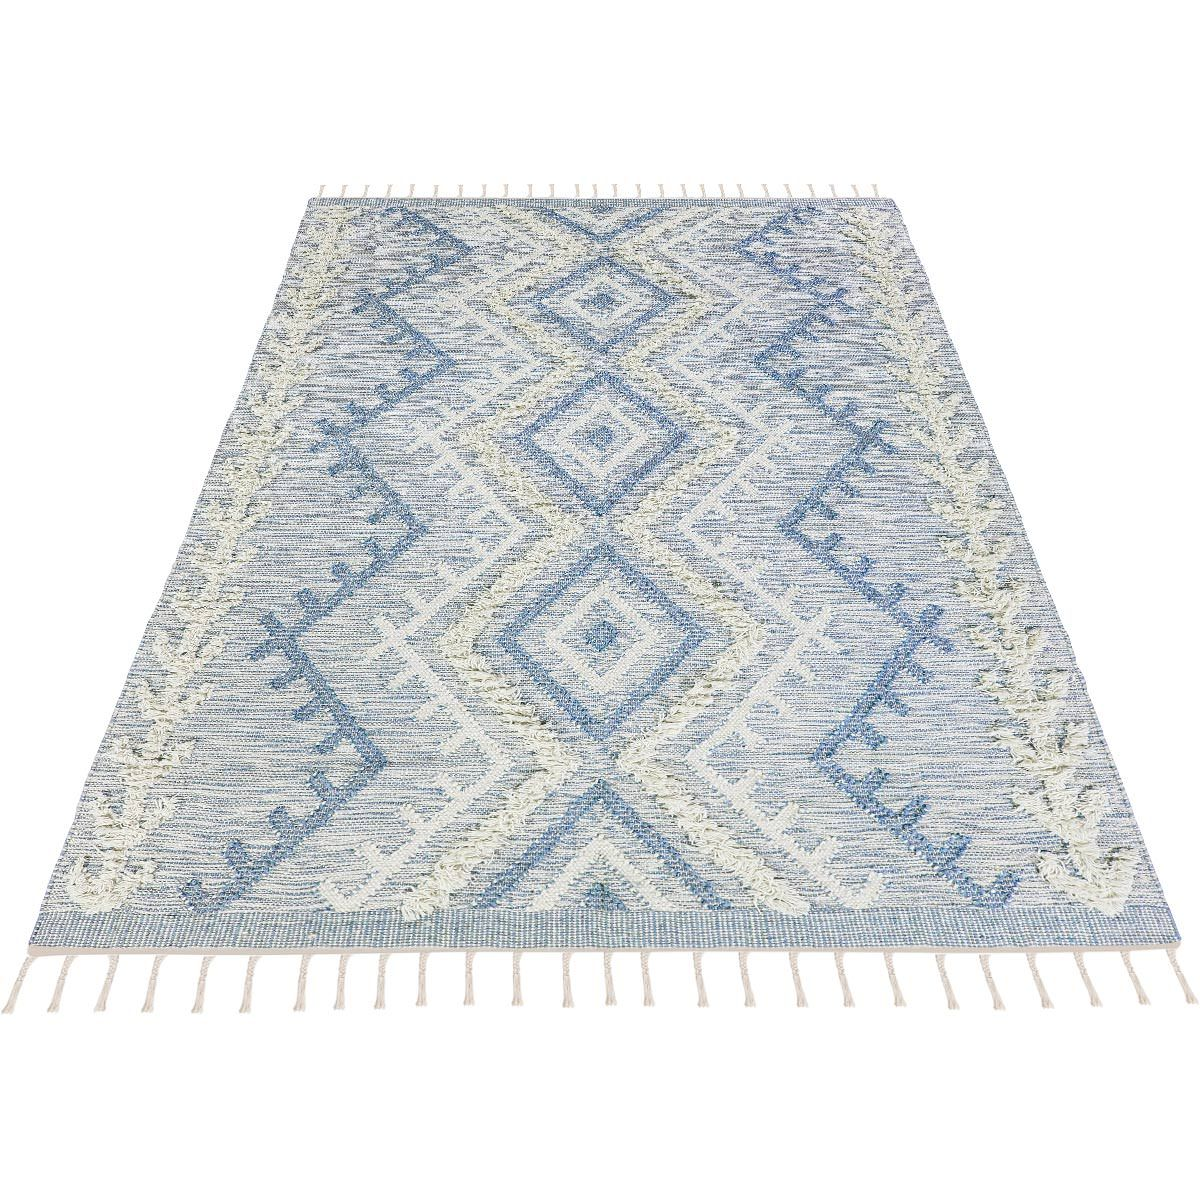 Tangier Rug 05 light blue 3